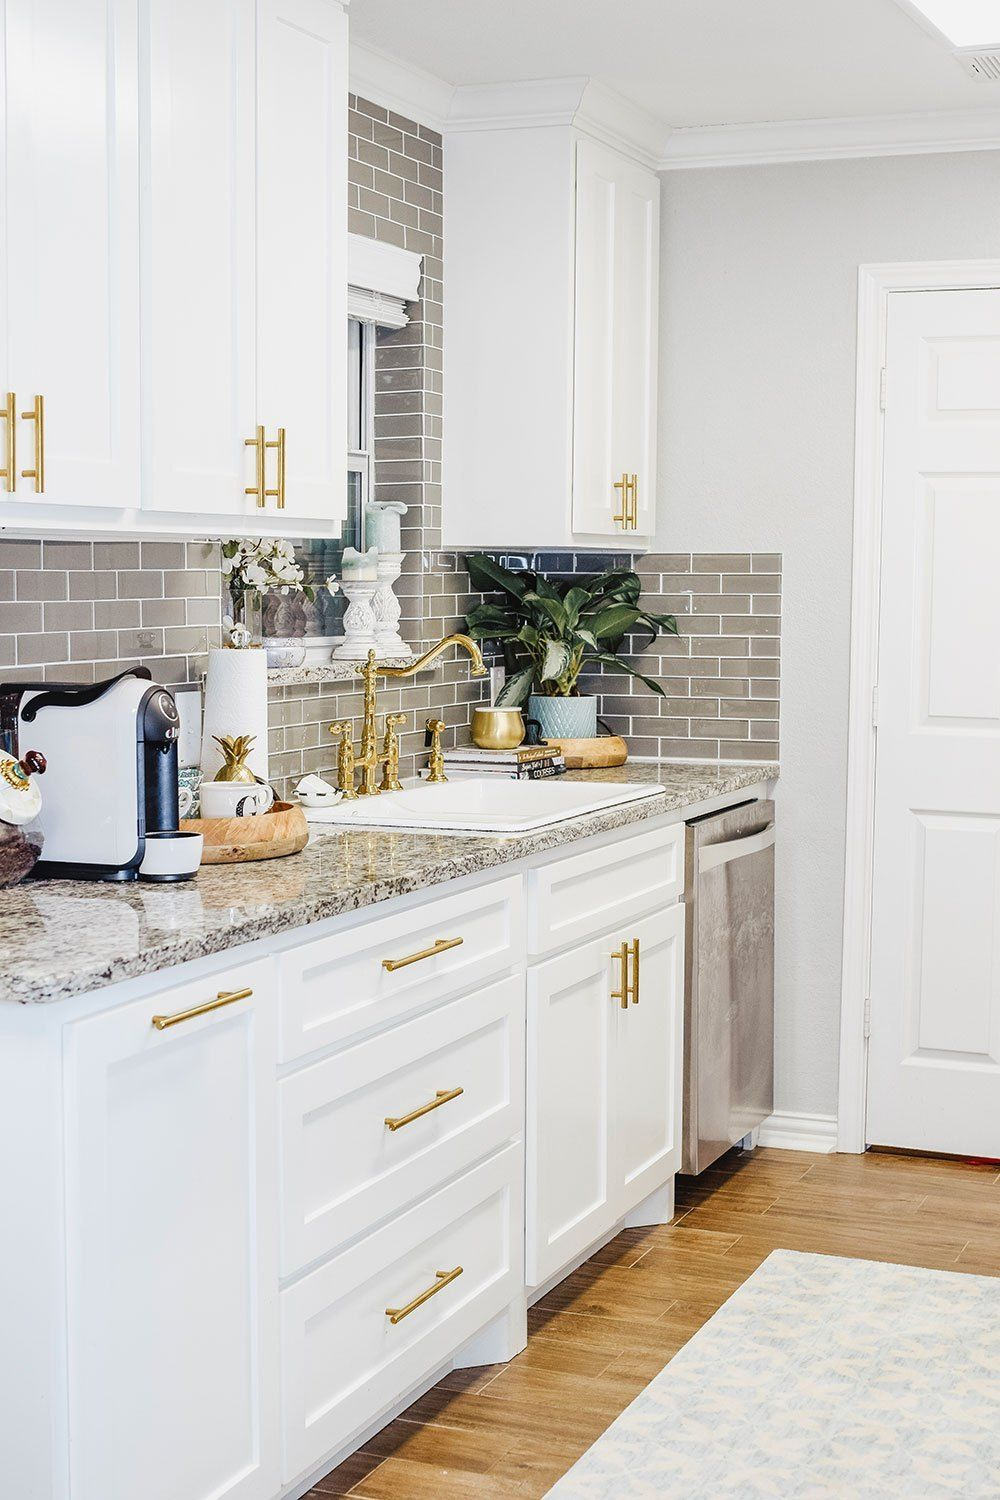 Our Kitchen Sink Woes Our Small Kitchen Reveal Vandi Fair Kitchen Remodel Small Kitchen Remodel Photos Kitchen Design